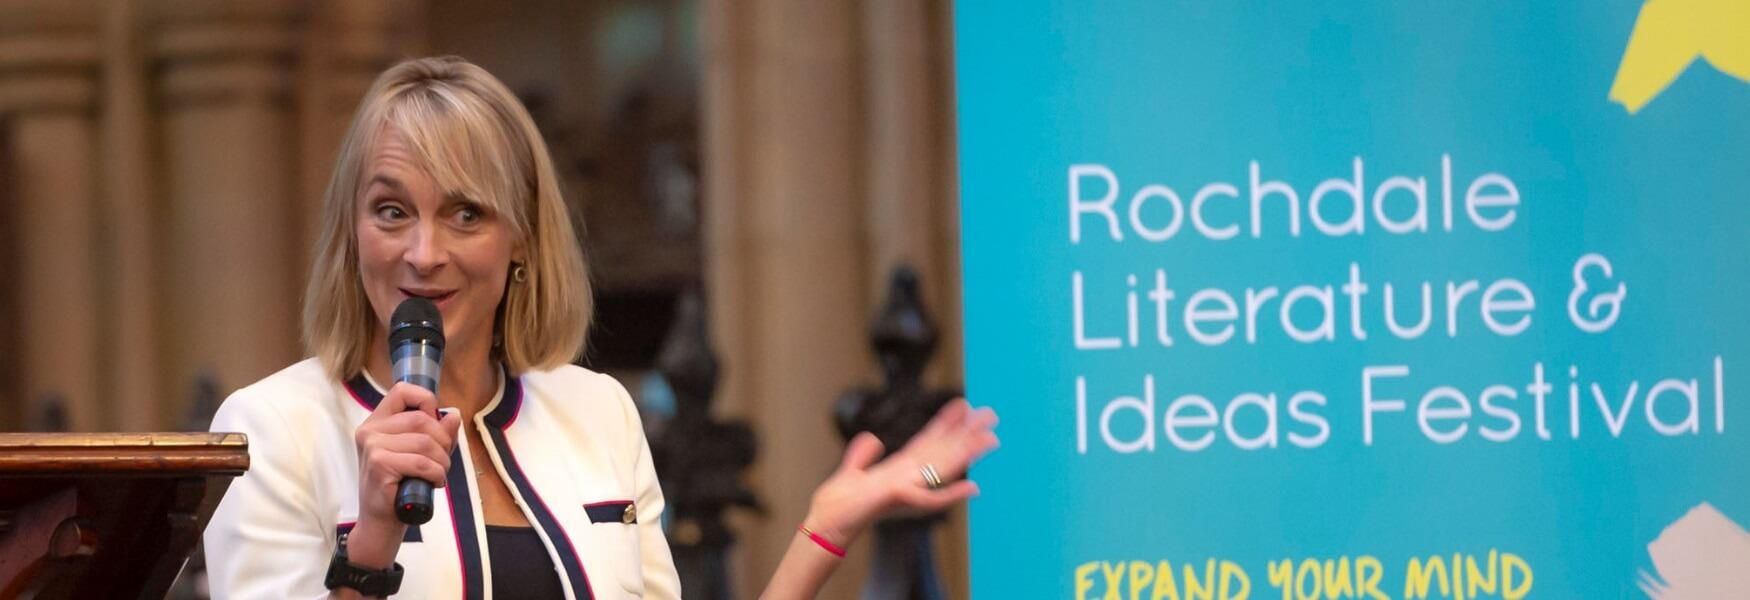 Louise Minchin speaking at the Rochdale Literature and Ideas Festival 2018.